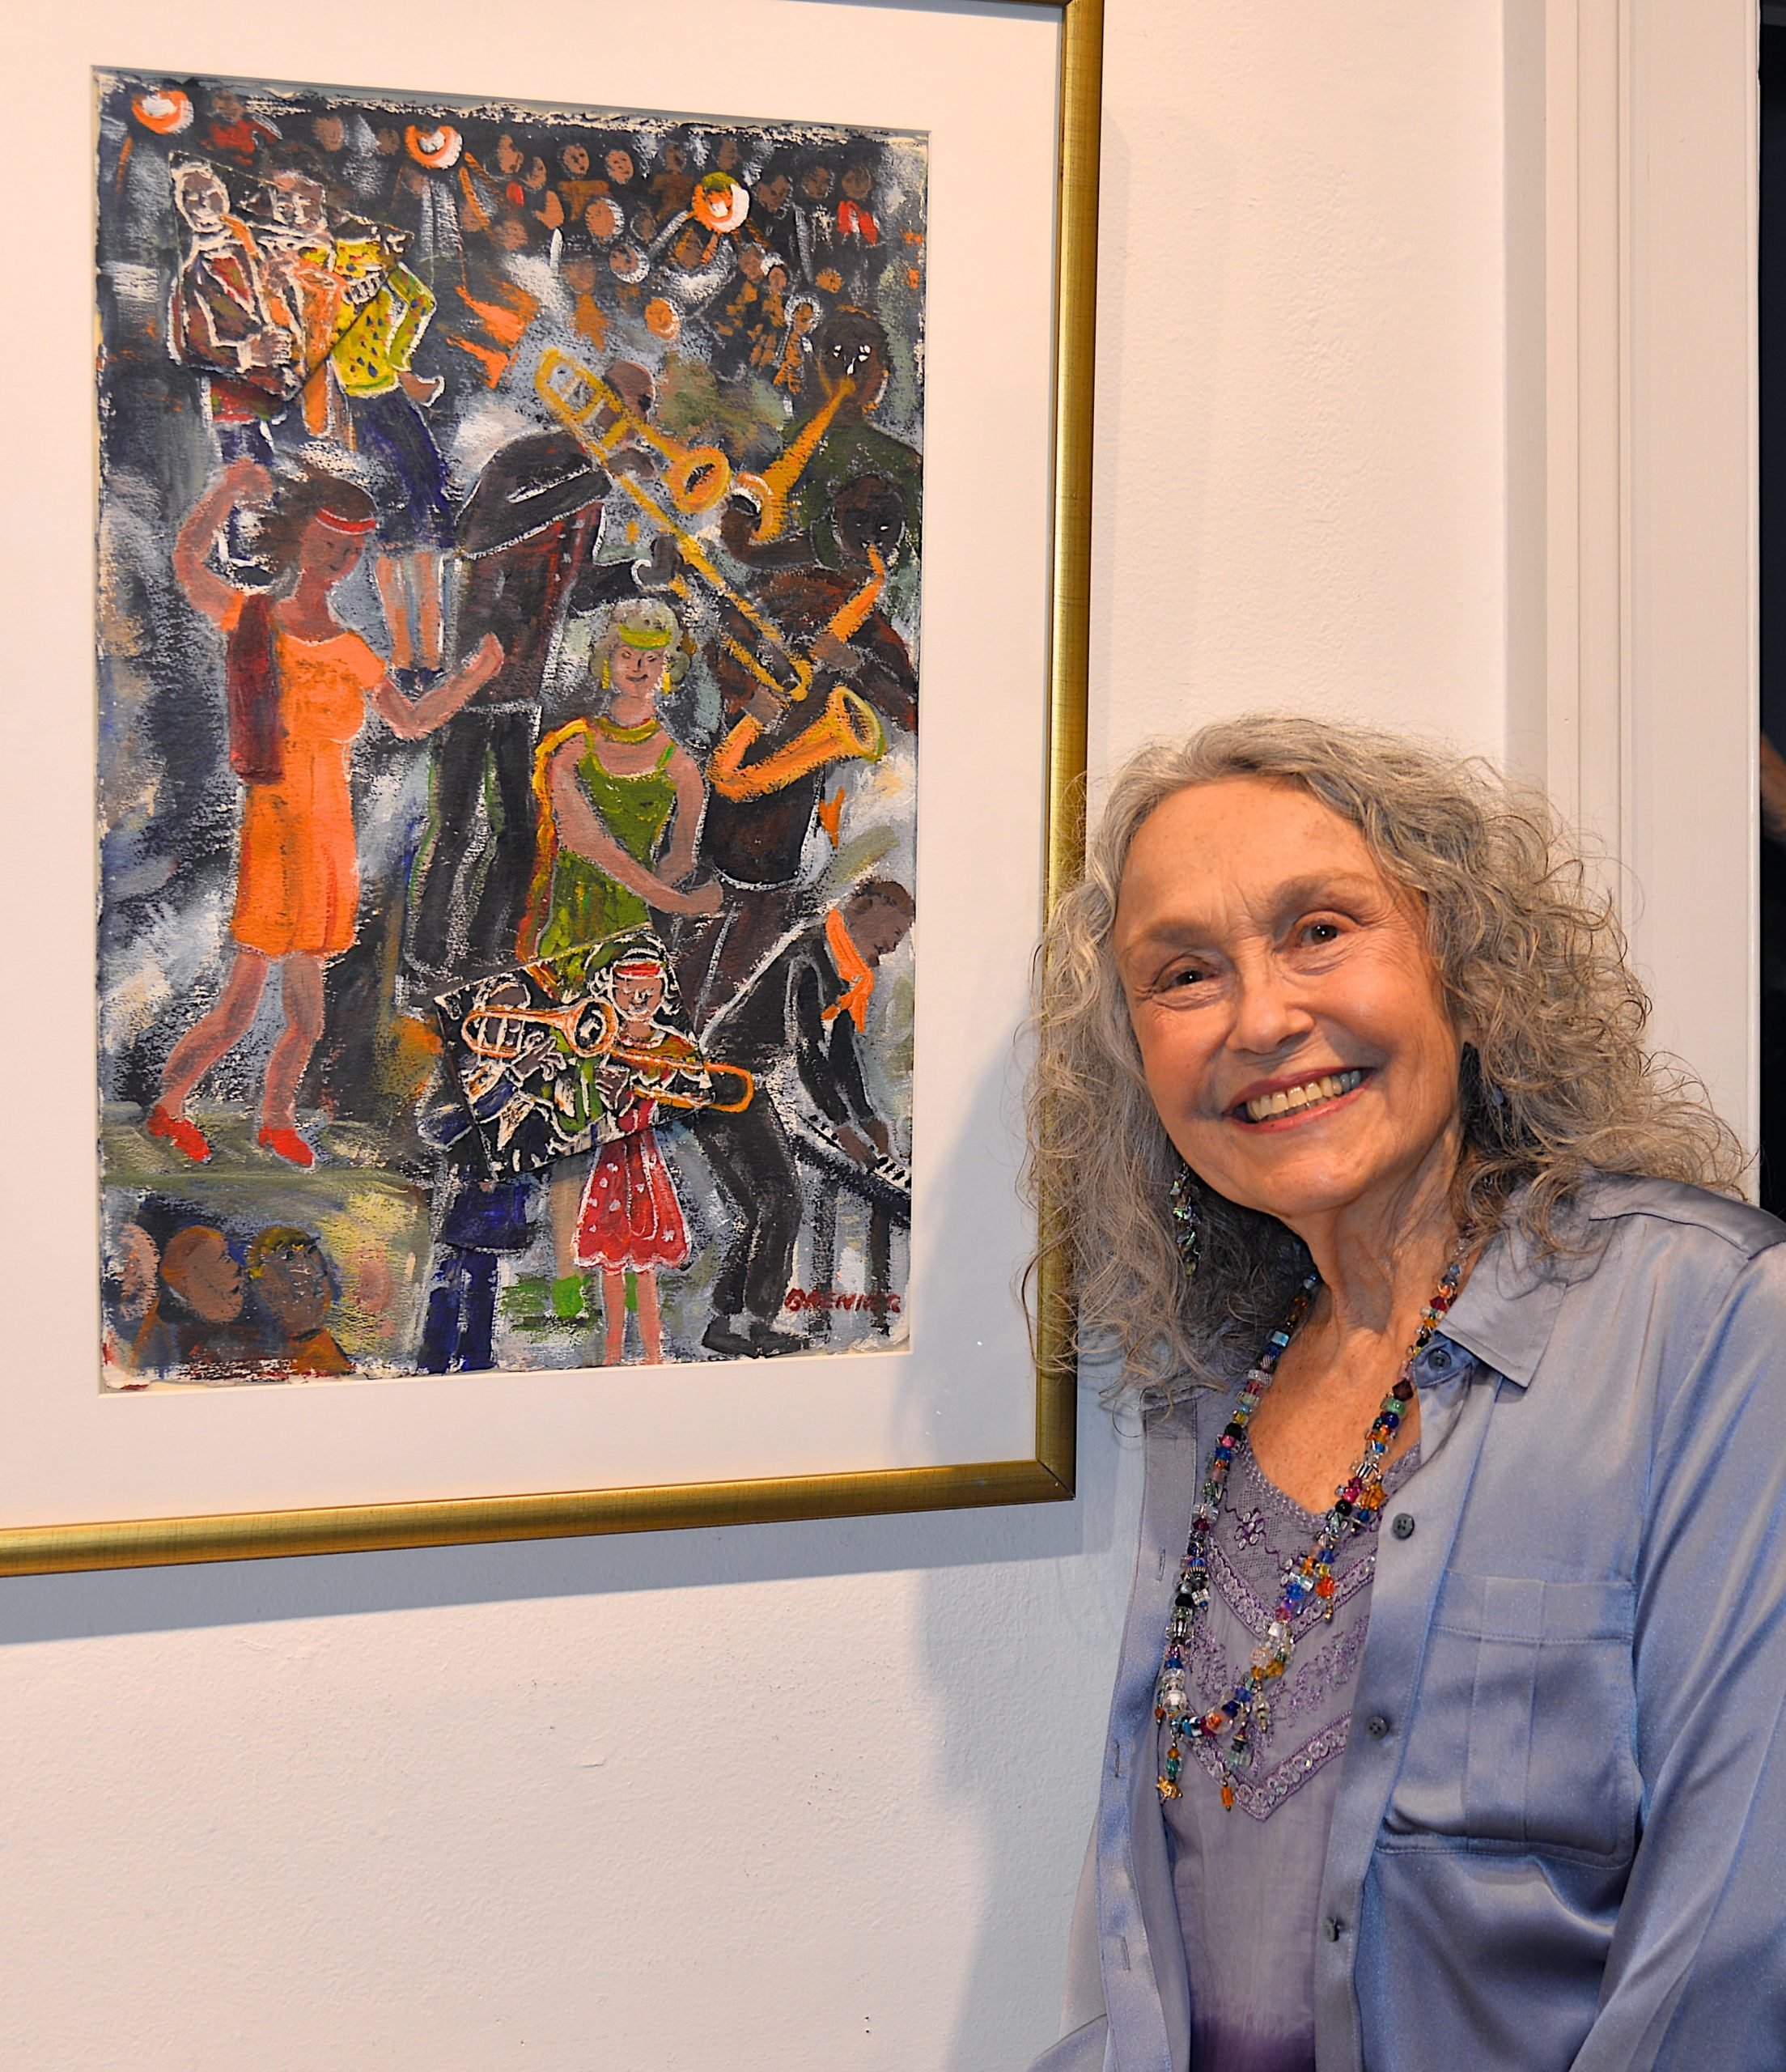 The Love And Passion art show, curated by Karyn Mannix, opened at Ashawagh Hall last weekend and featured art work, music, dancing and poetry.  Rosalind Brenner with her art work. KYRIL BROMLEY